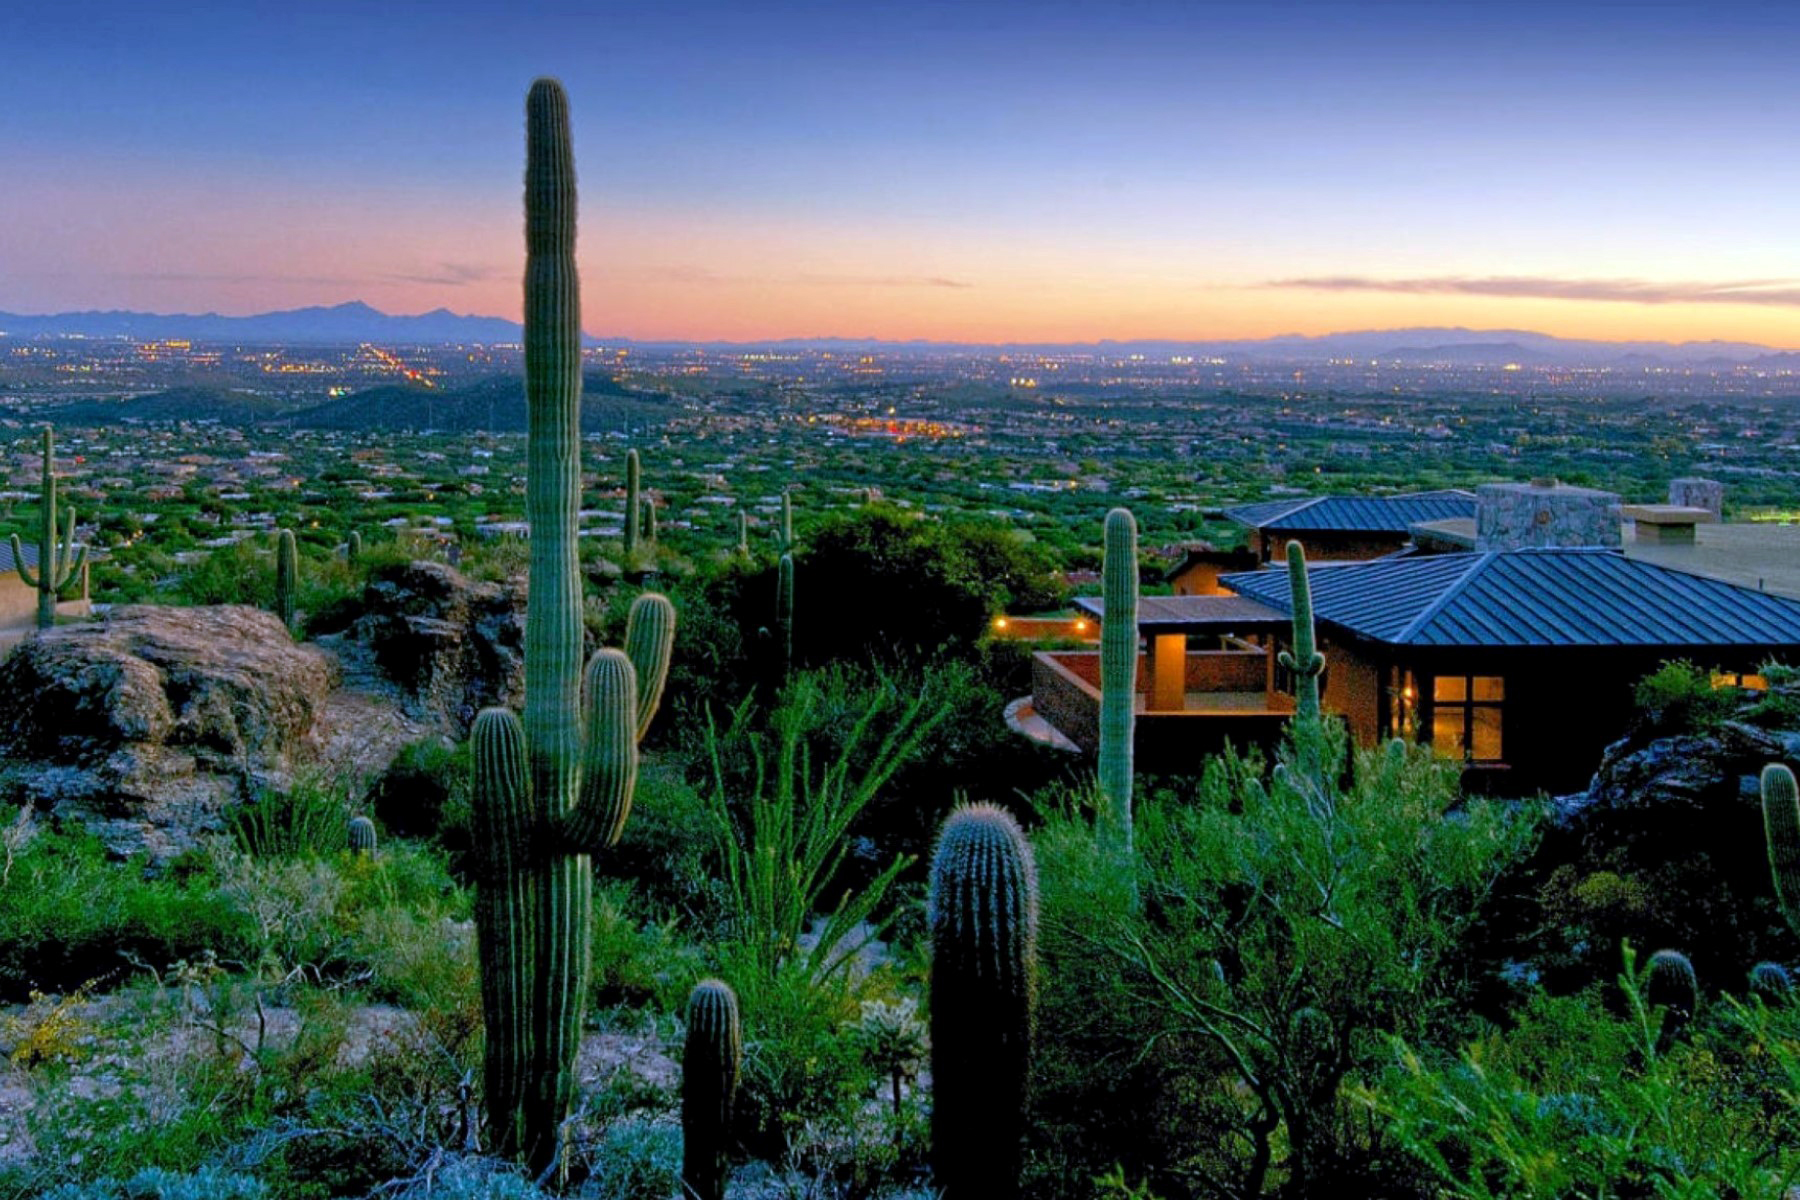 Частный односемейный дом для того Продажа на The Crown Jewel In Tucson Real Estate with Uncomparable Views 6600 N Eagle Ridge Drive Tucson, Аризона 85718 Соединенные Штаты